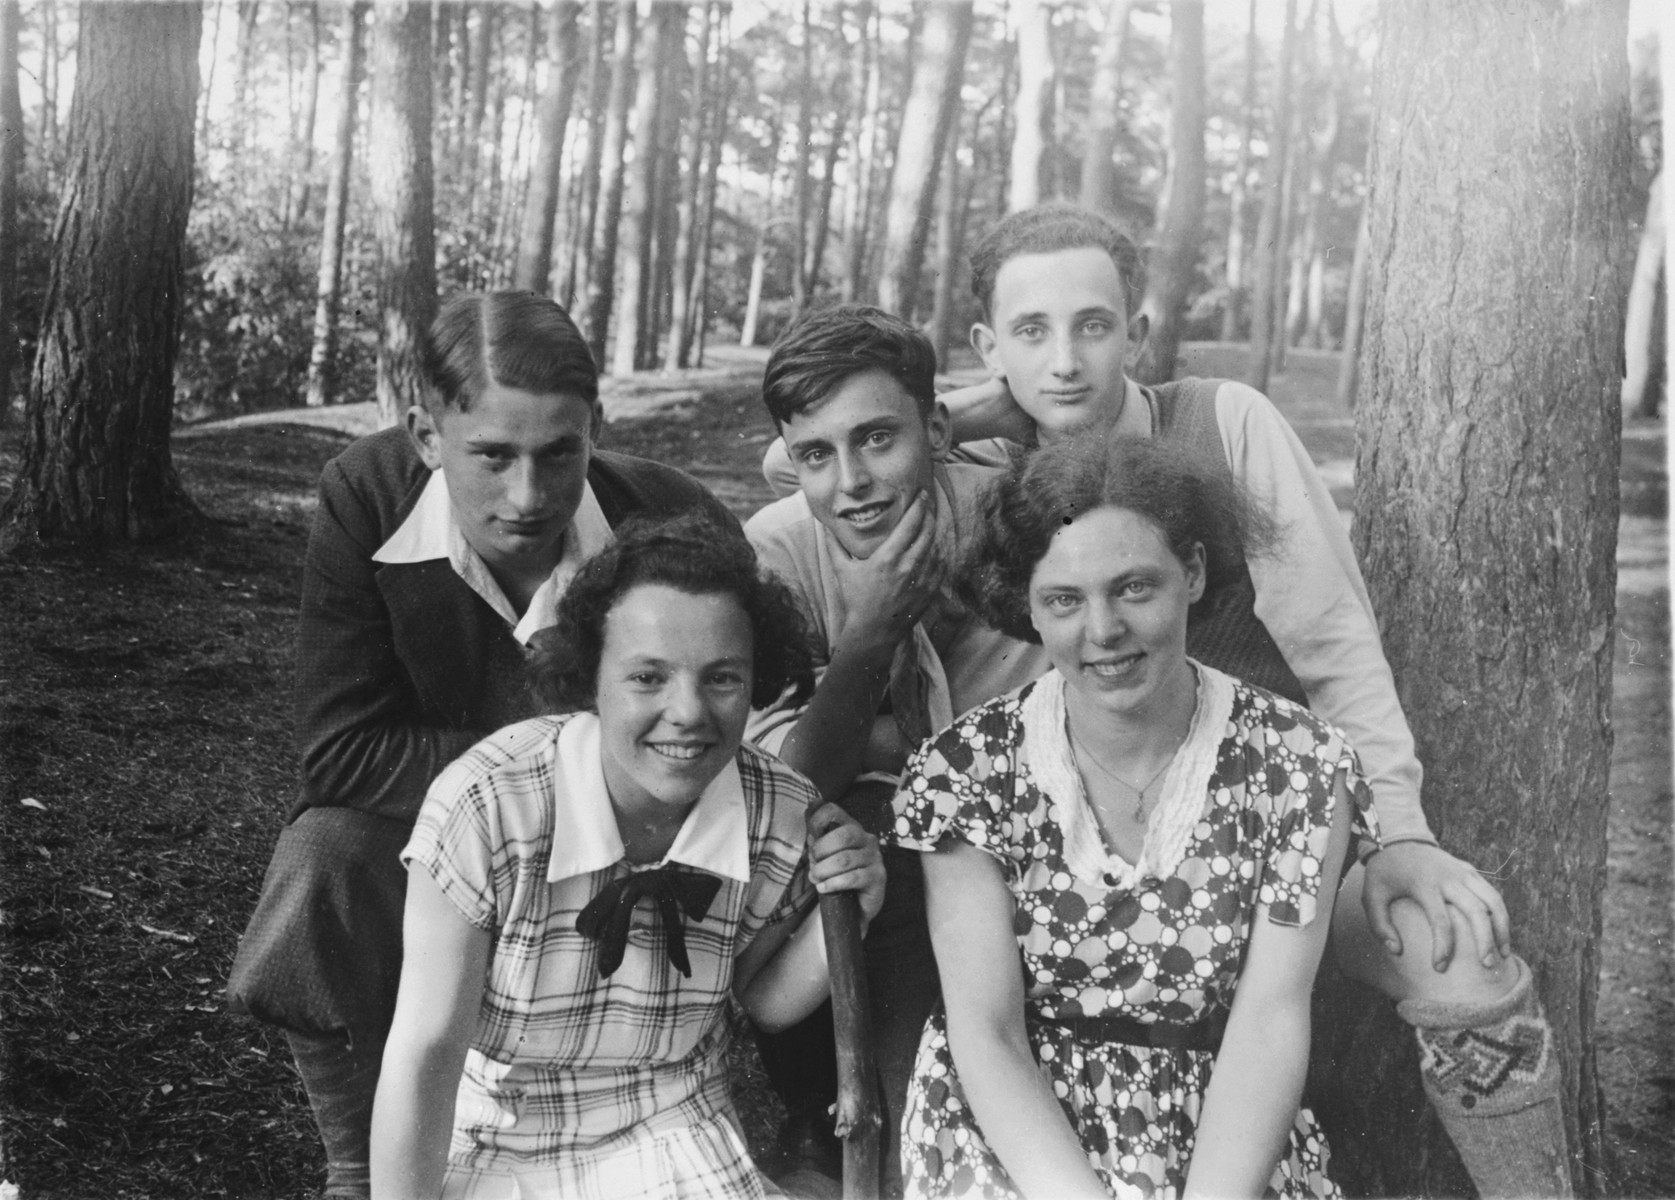 Group portrait of four Zionist youth.  Letty Rudelsheim is pictured on the bottom left.